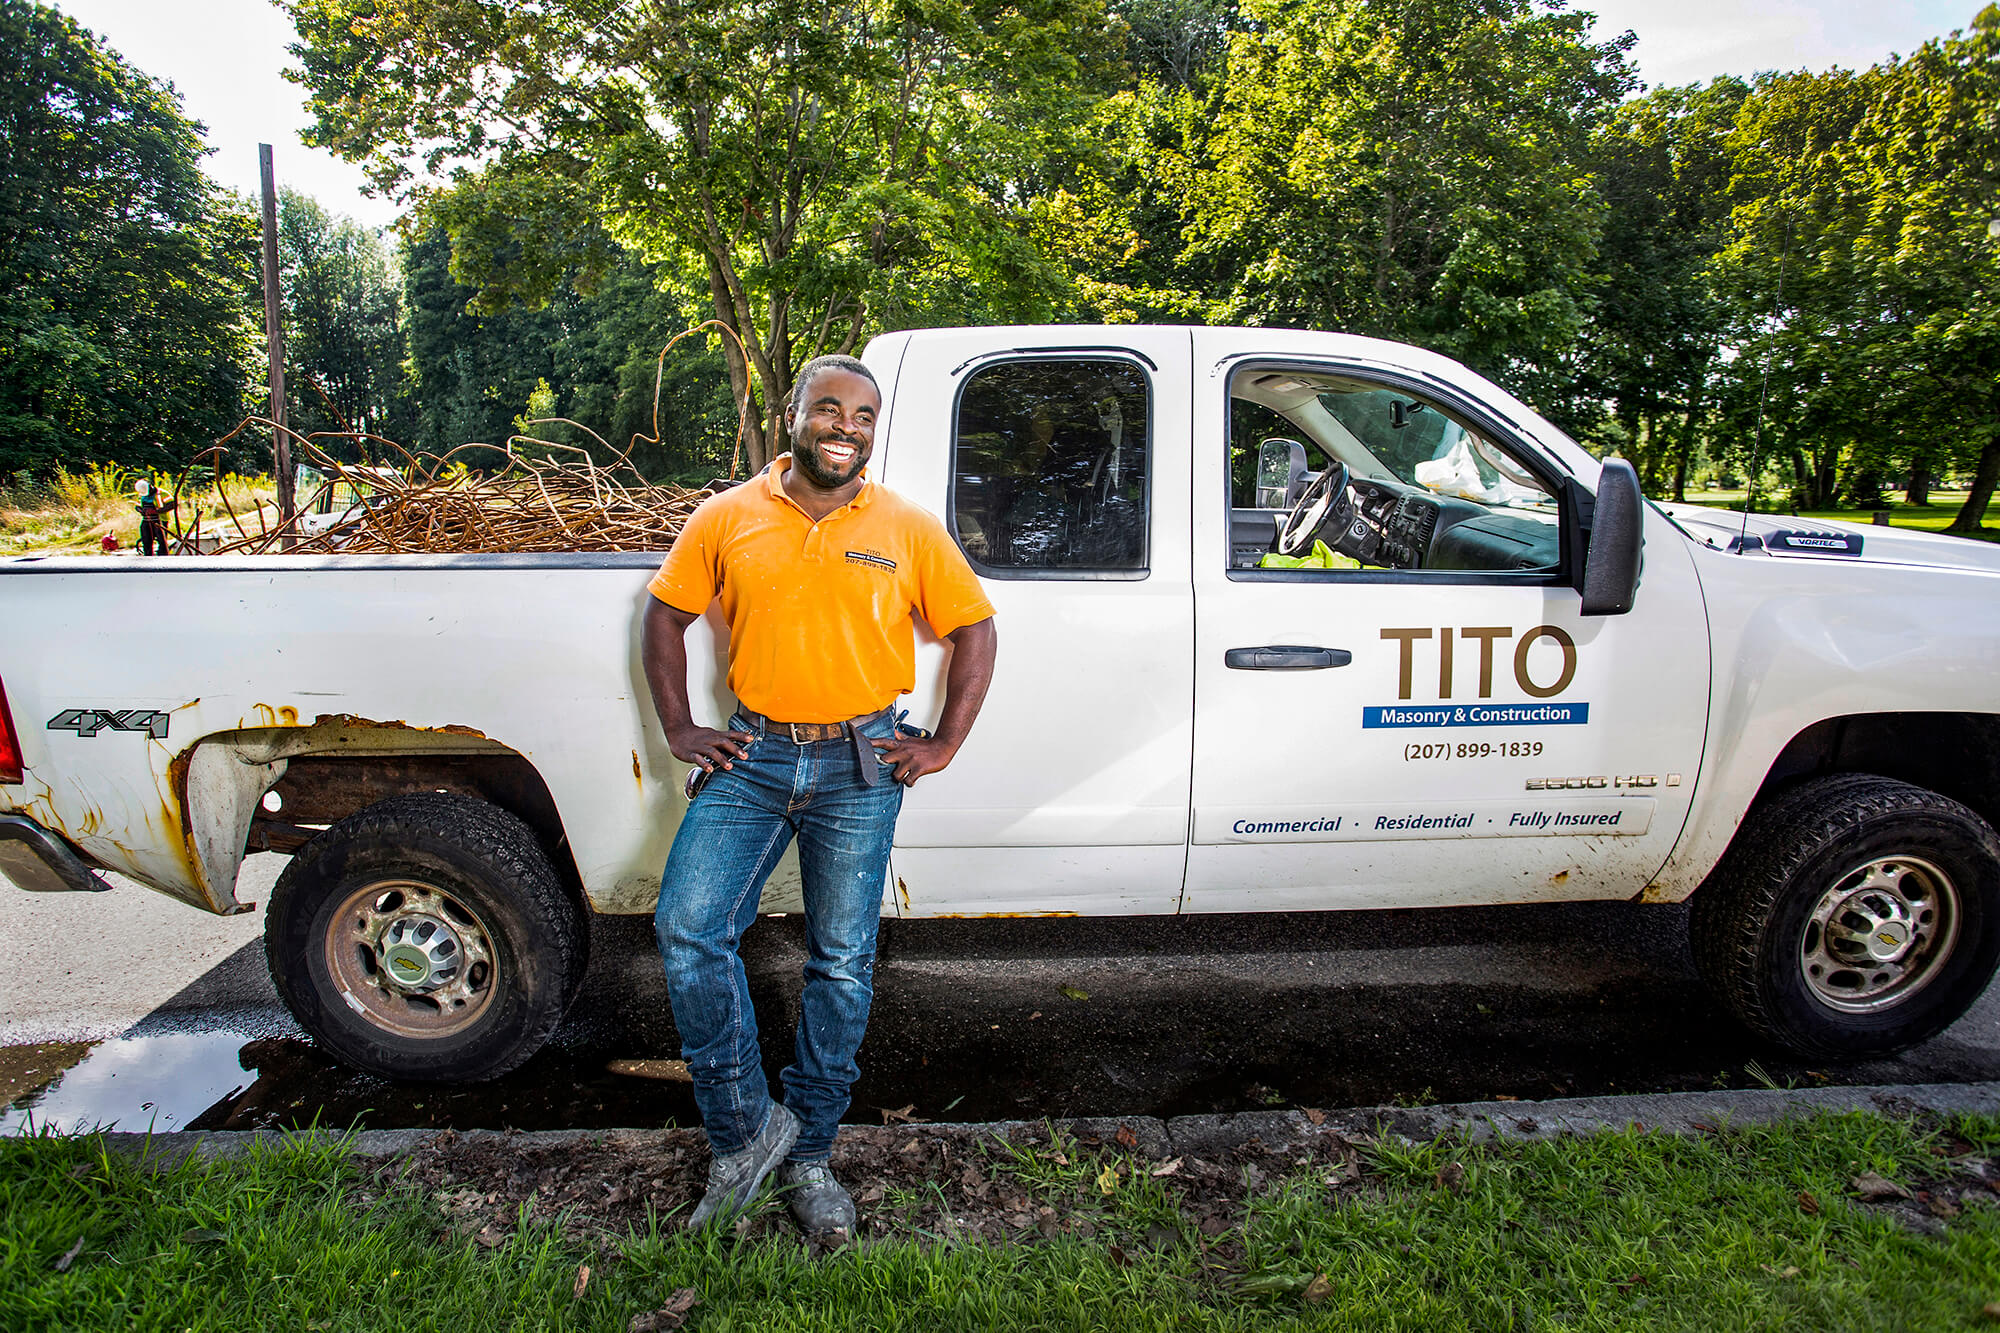 Portrait photography of Tito Masonry in Portland Maine